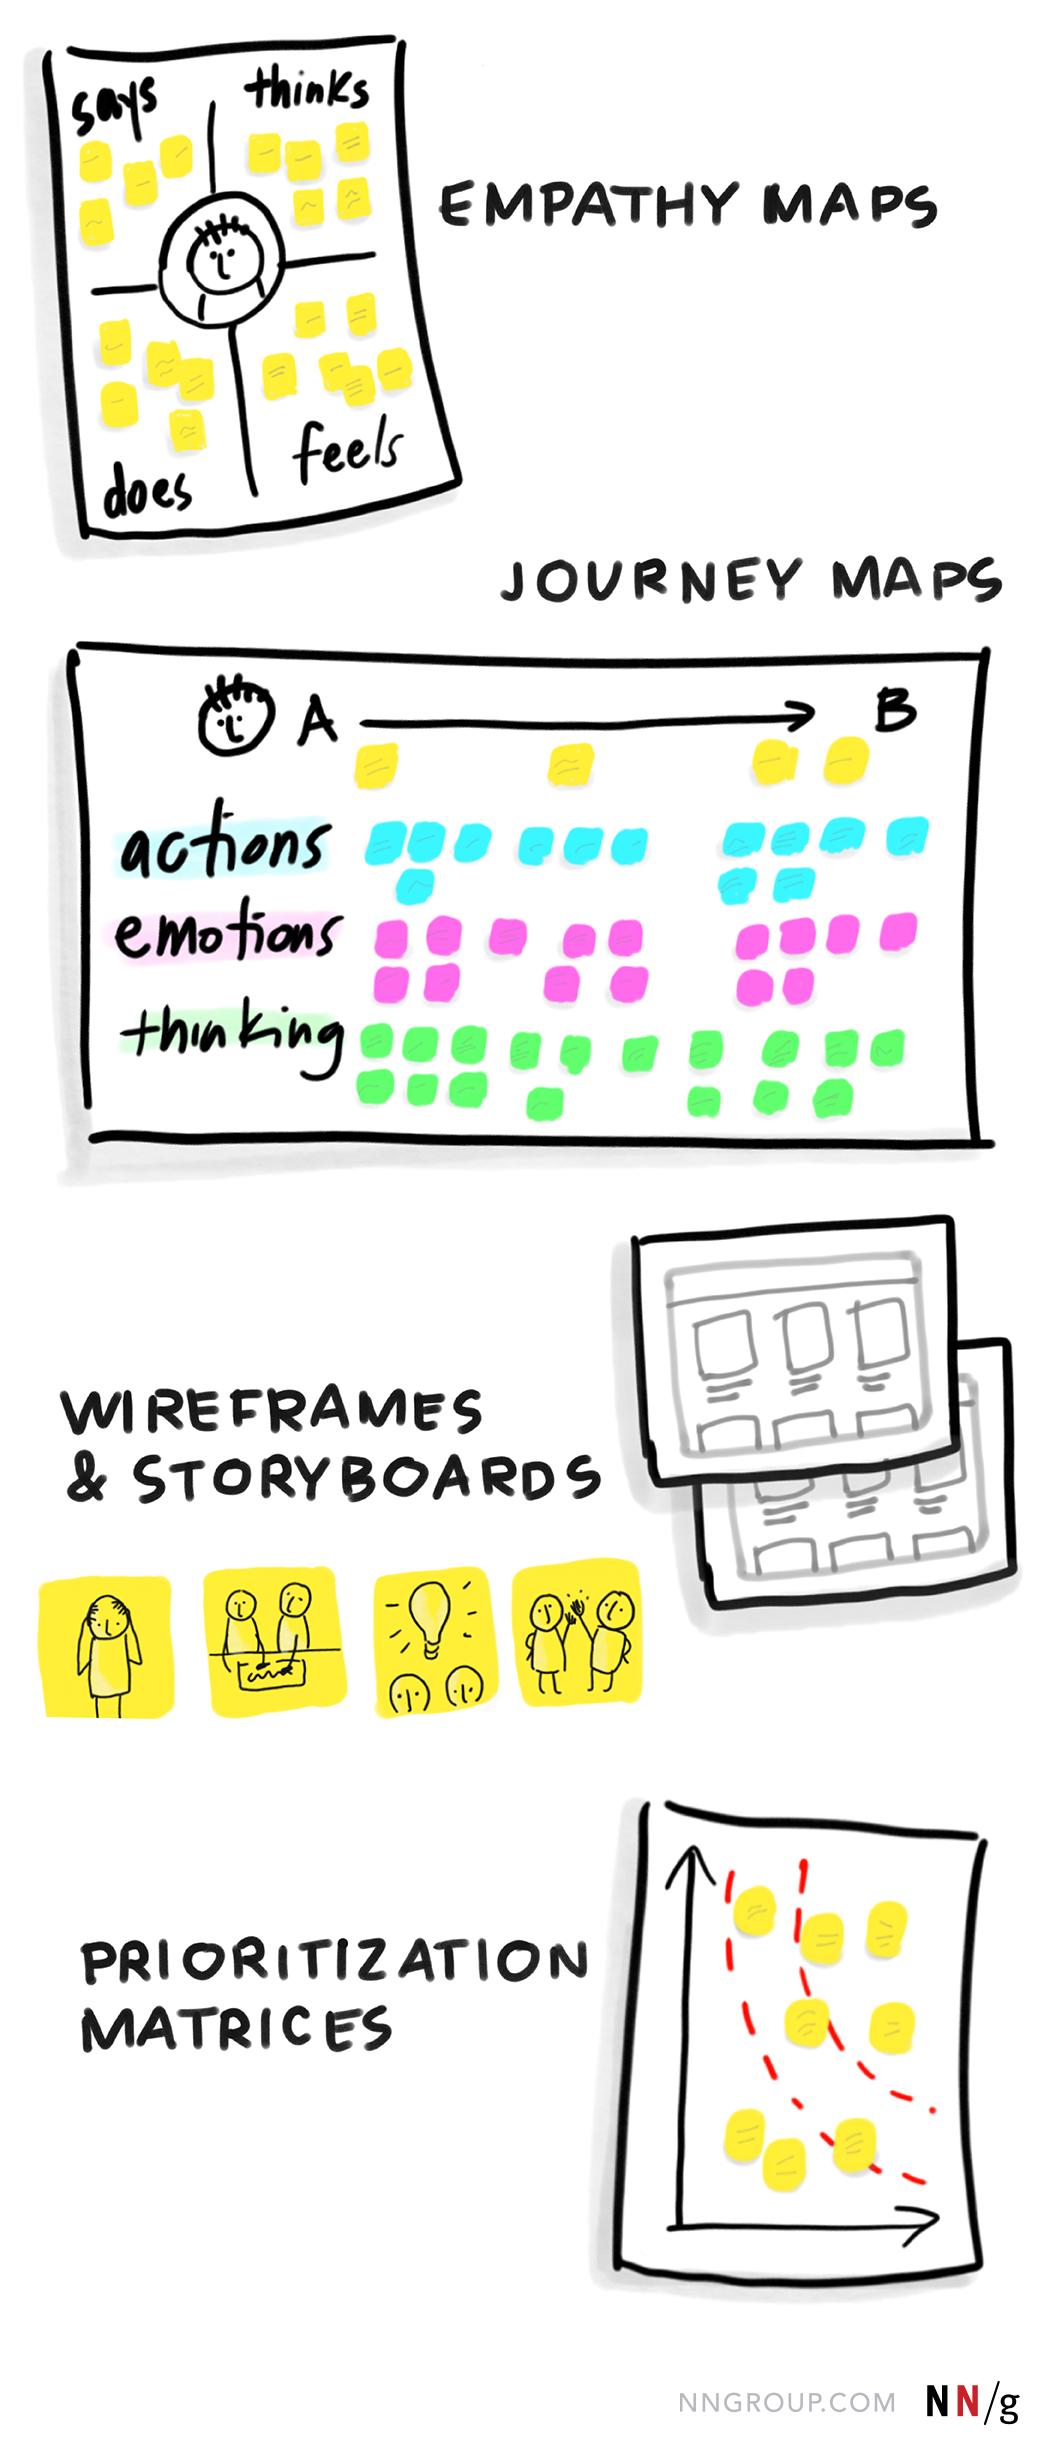 I love the empathy maps. A tool I haven't used yet, but will in the future.